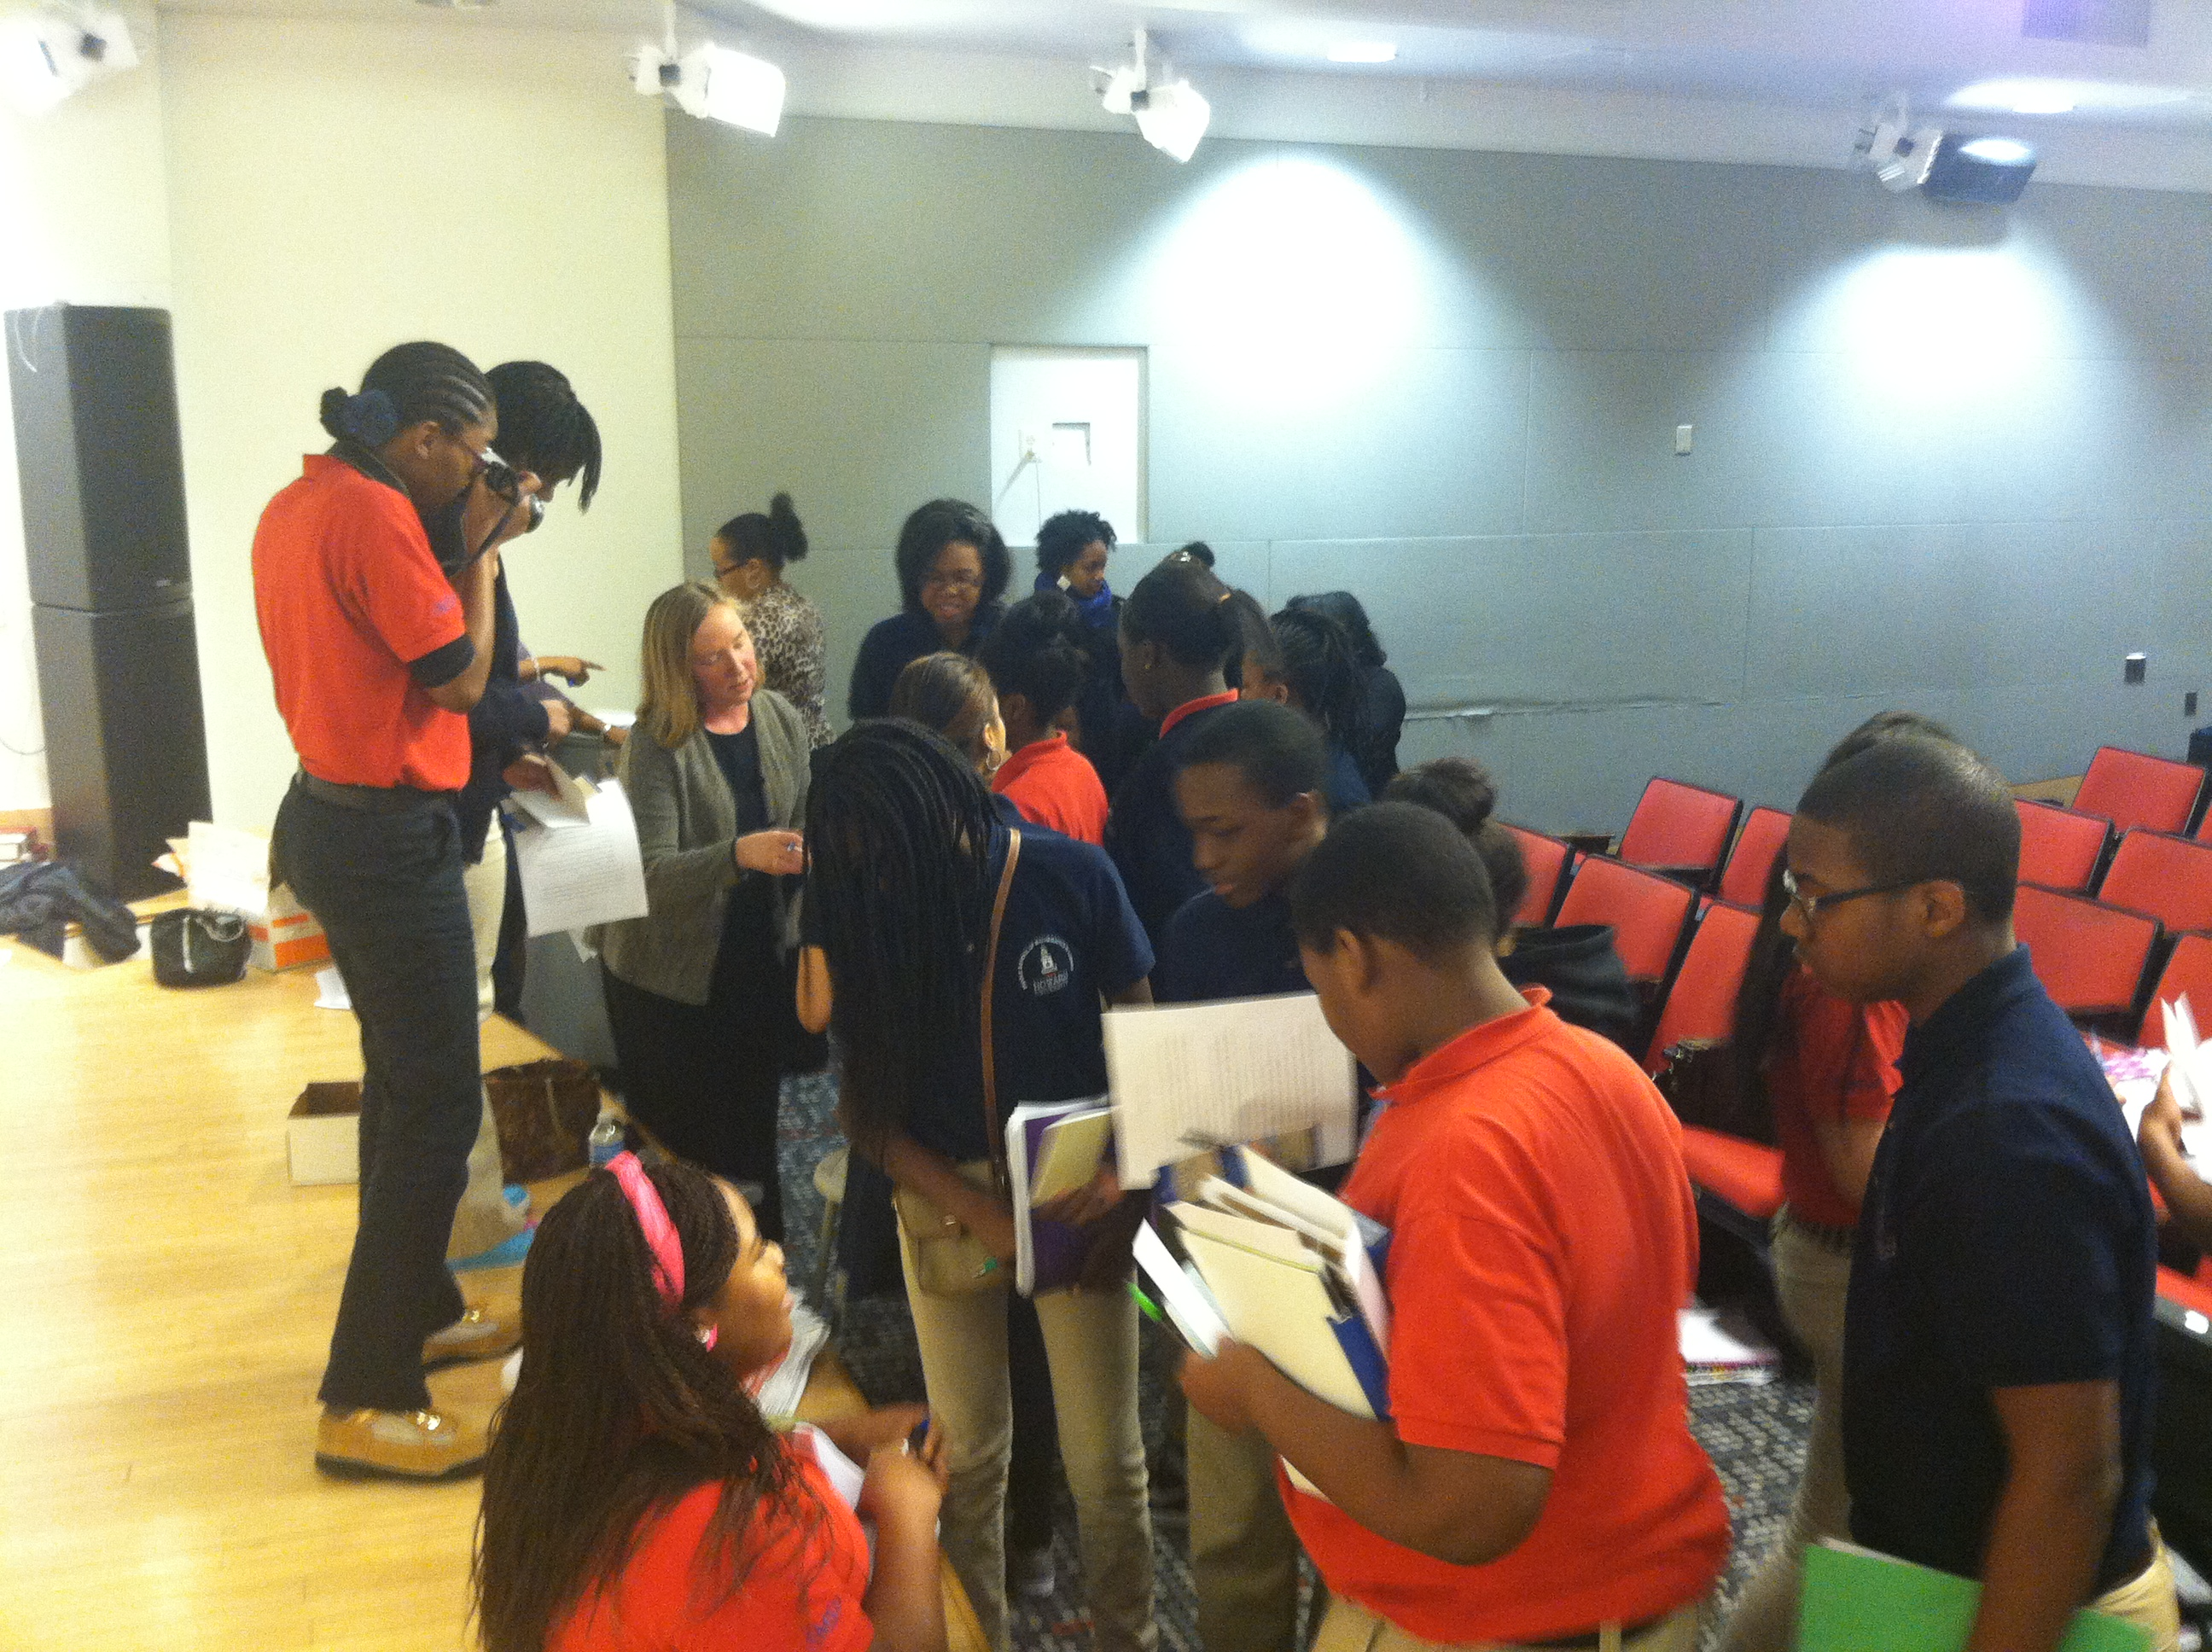 Valerie Patterson with students from Howard University Middle School